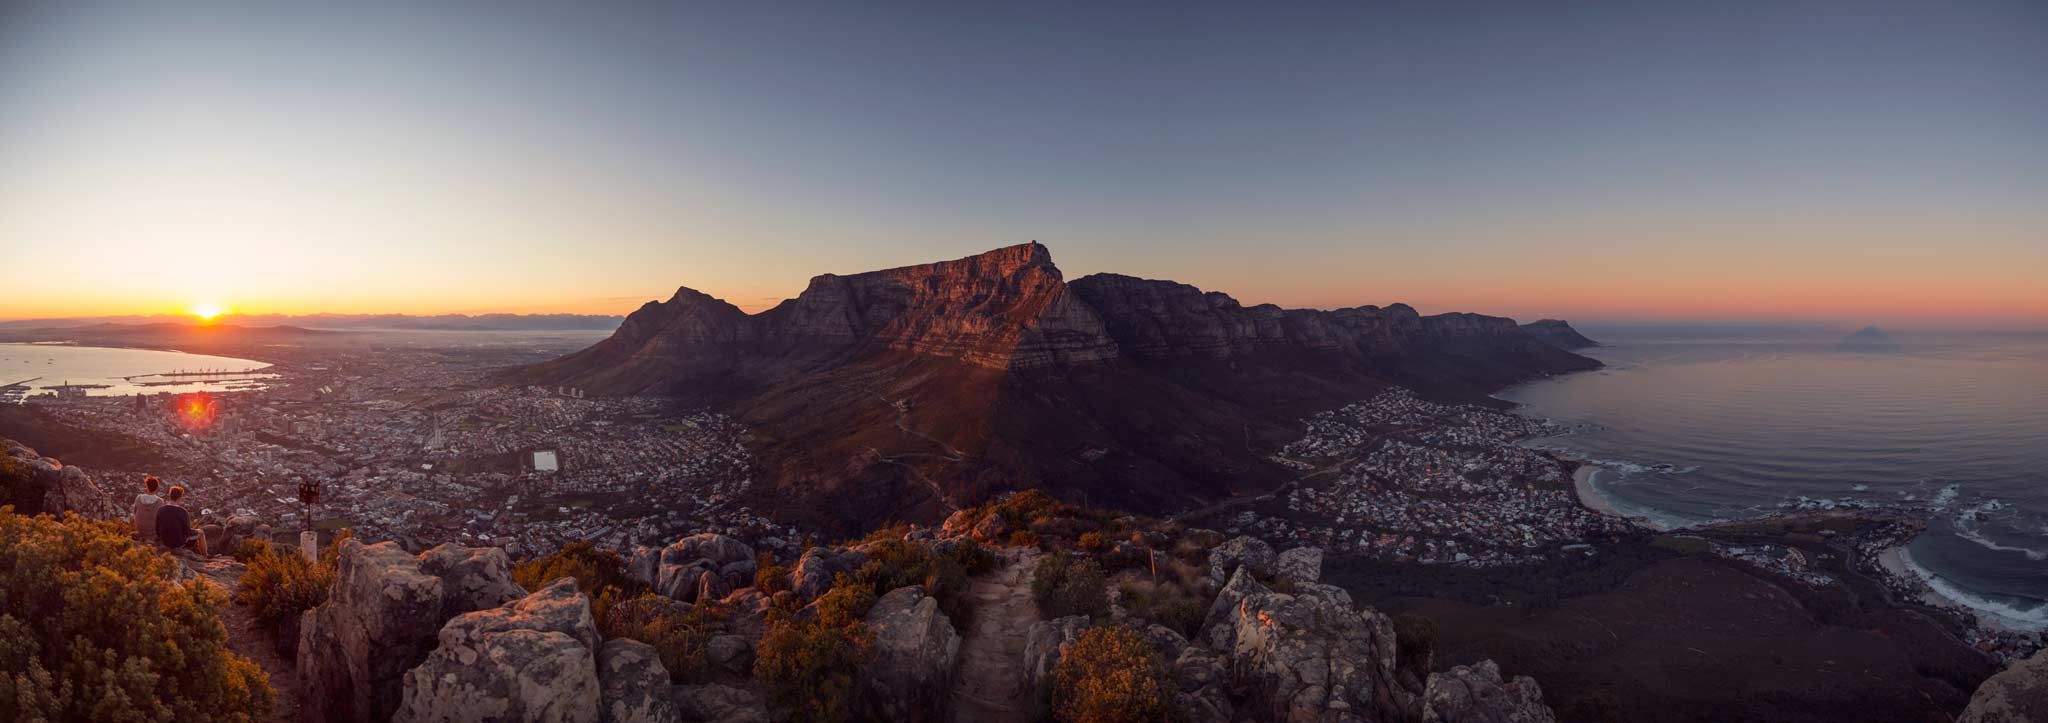 cape town sunrise panorama